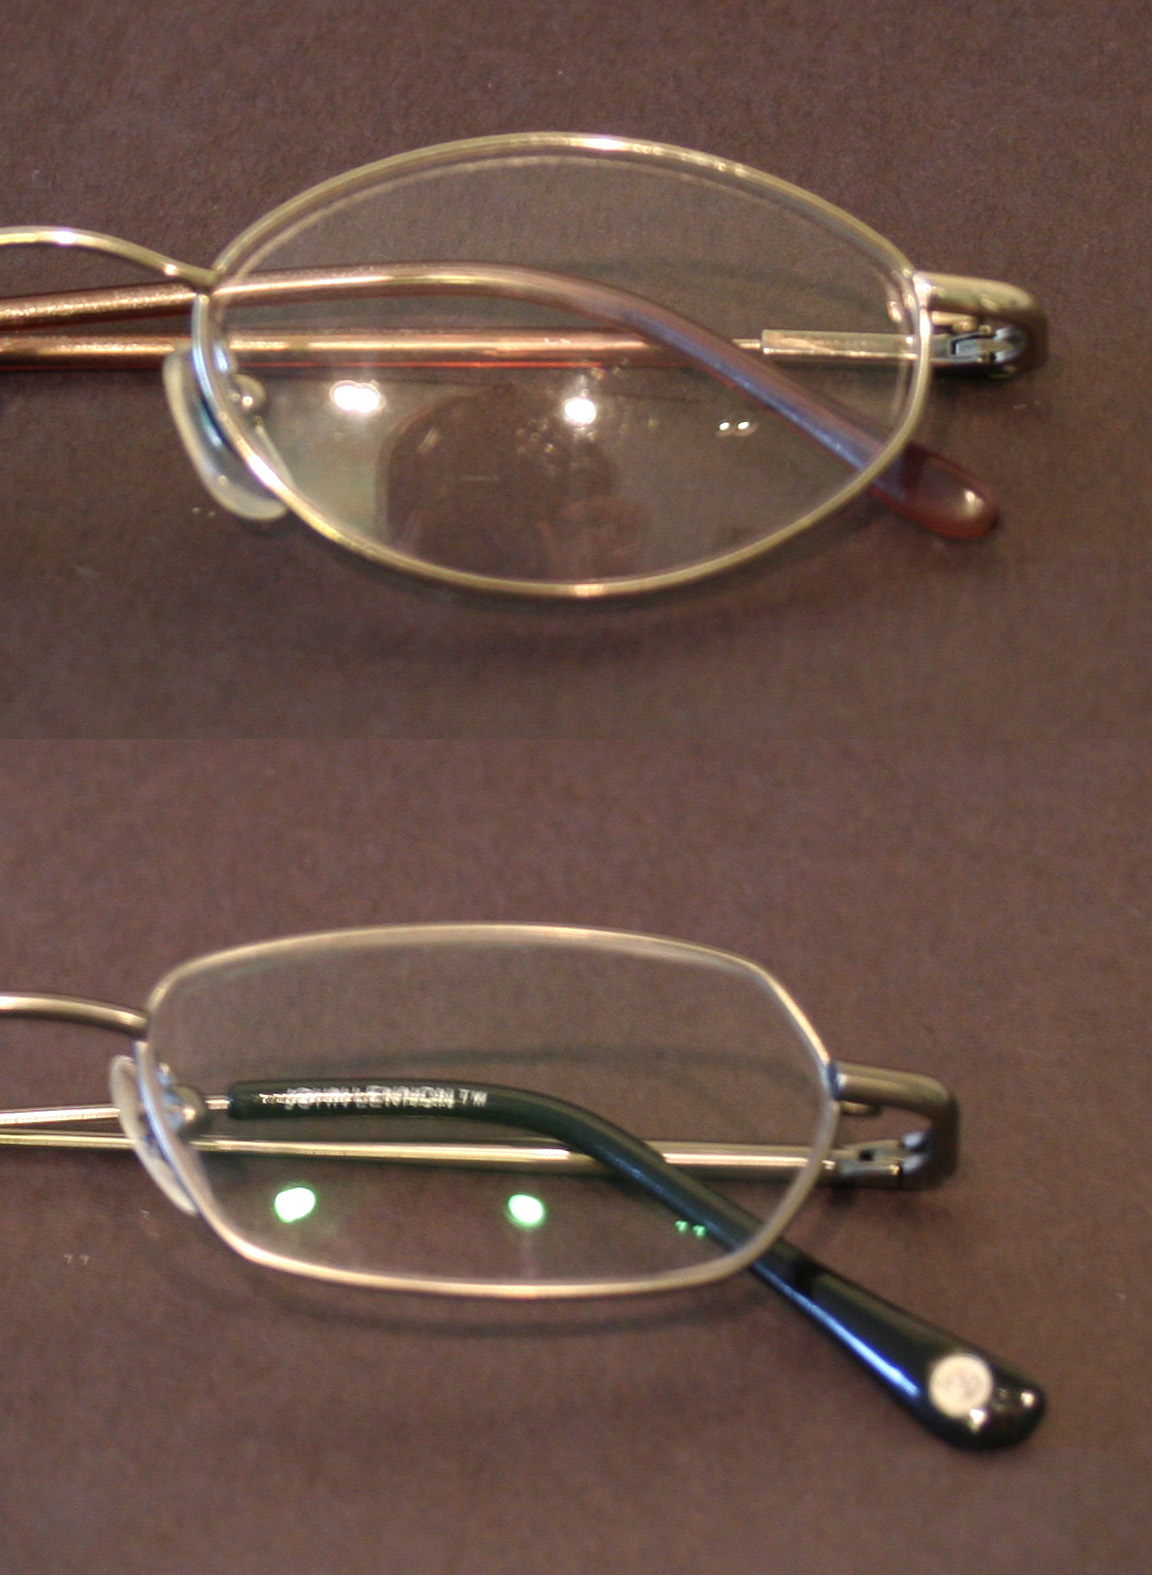 d6b371568e Anti-reflective coating - Wikipedia